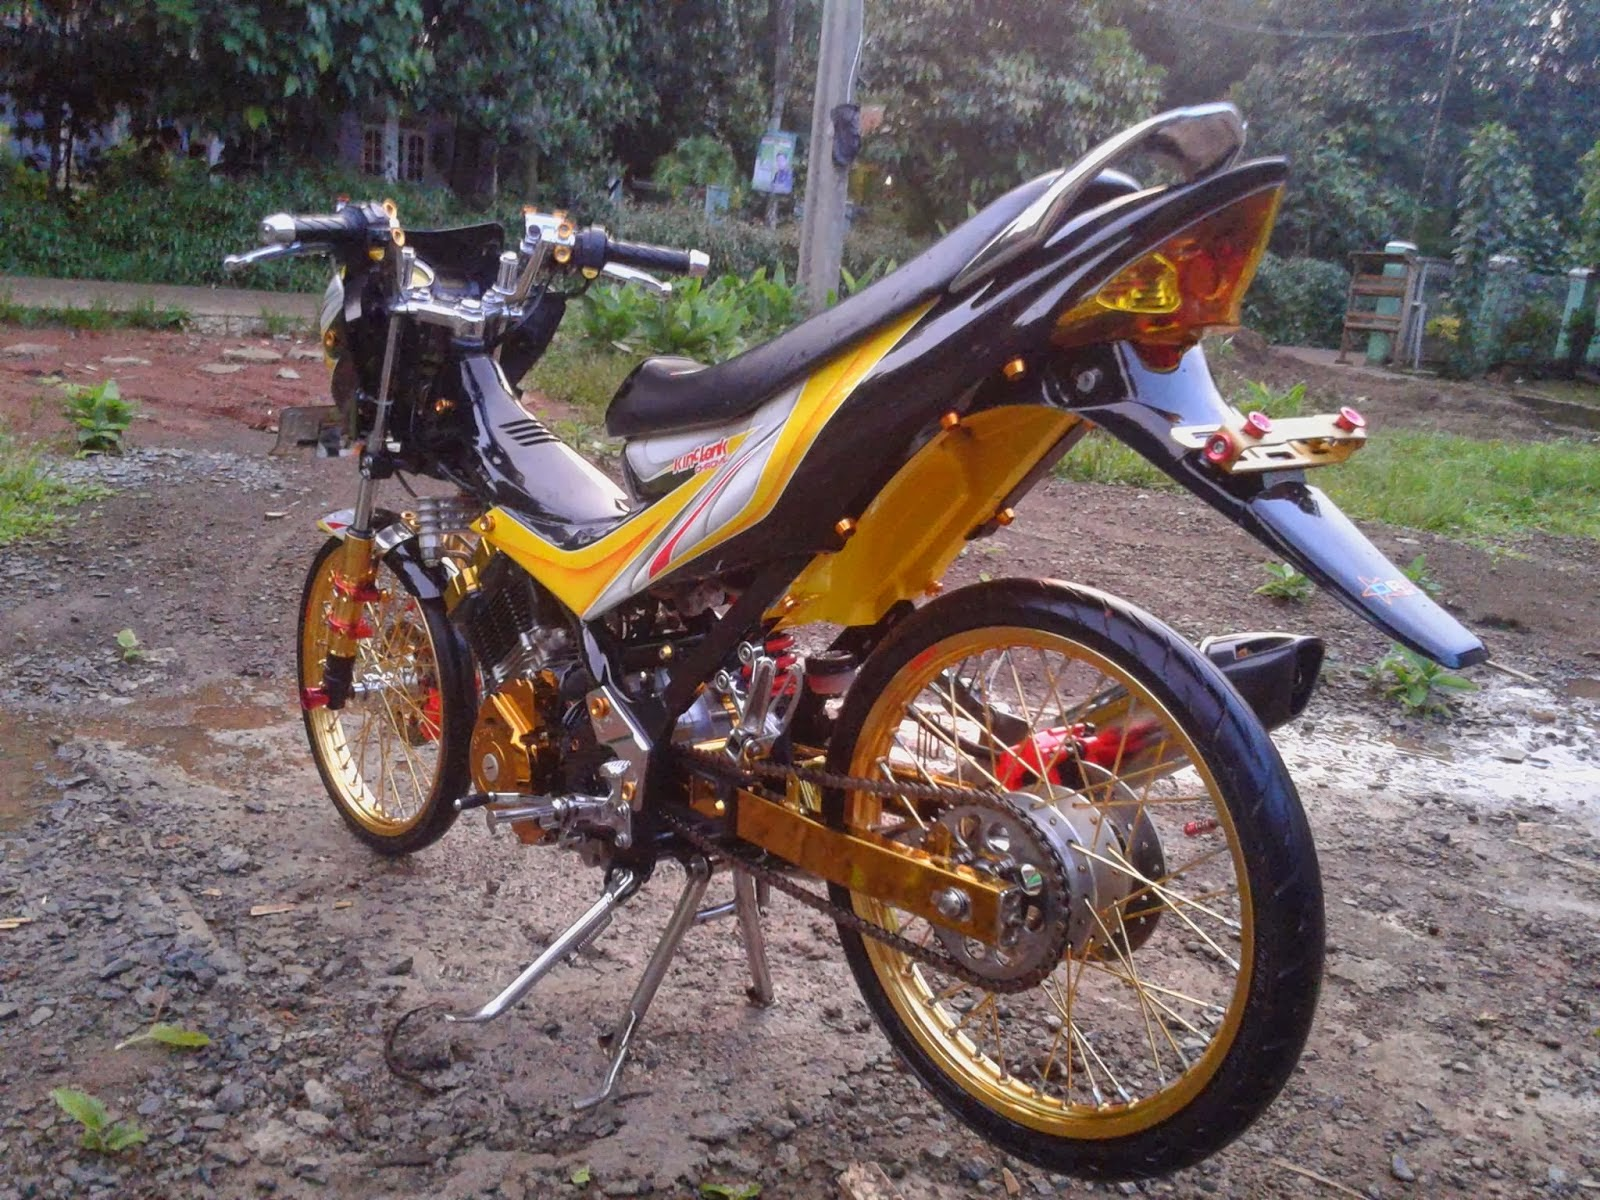 105 Modifikasi Honda Beat Fi Velg Jari Jari Modifikasi Motor Beat